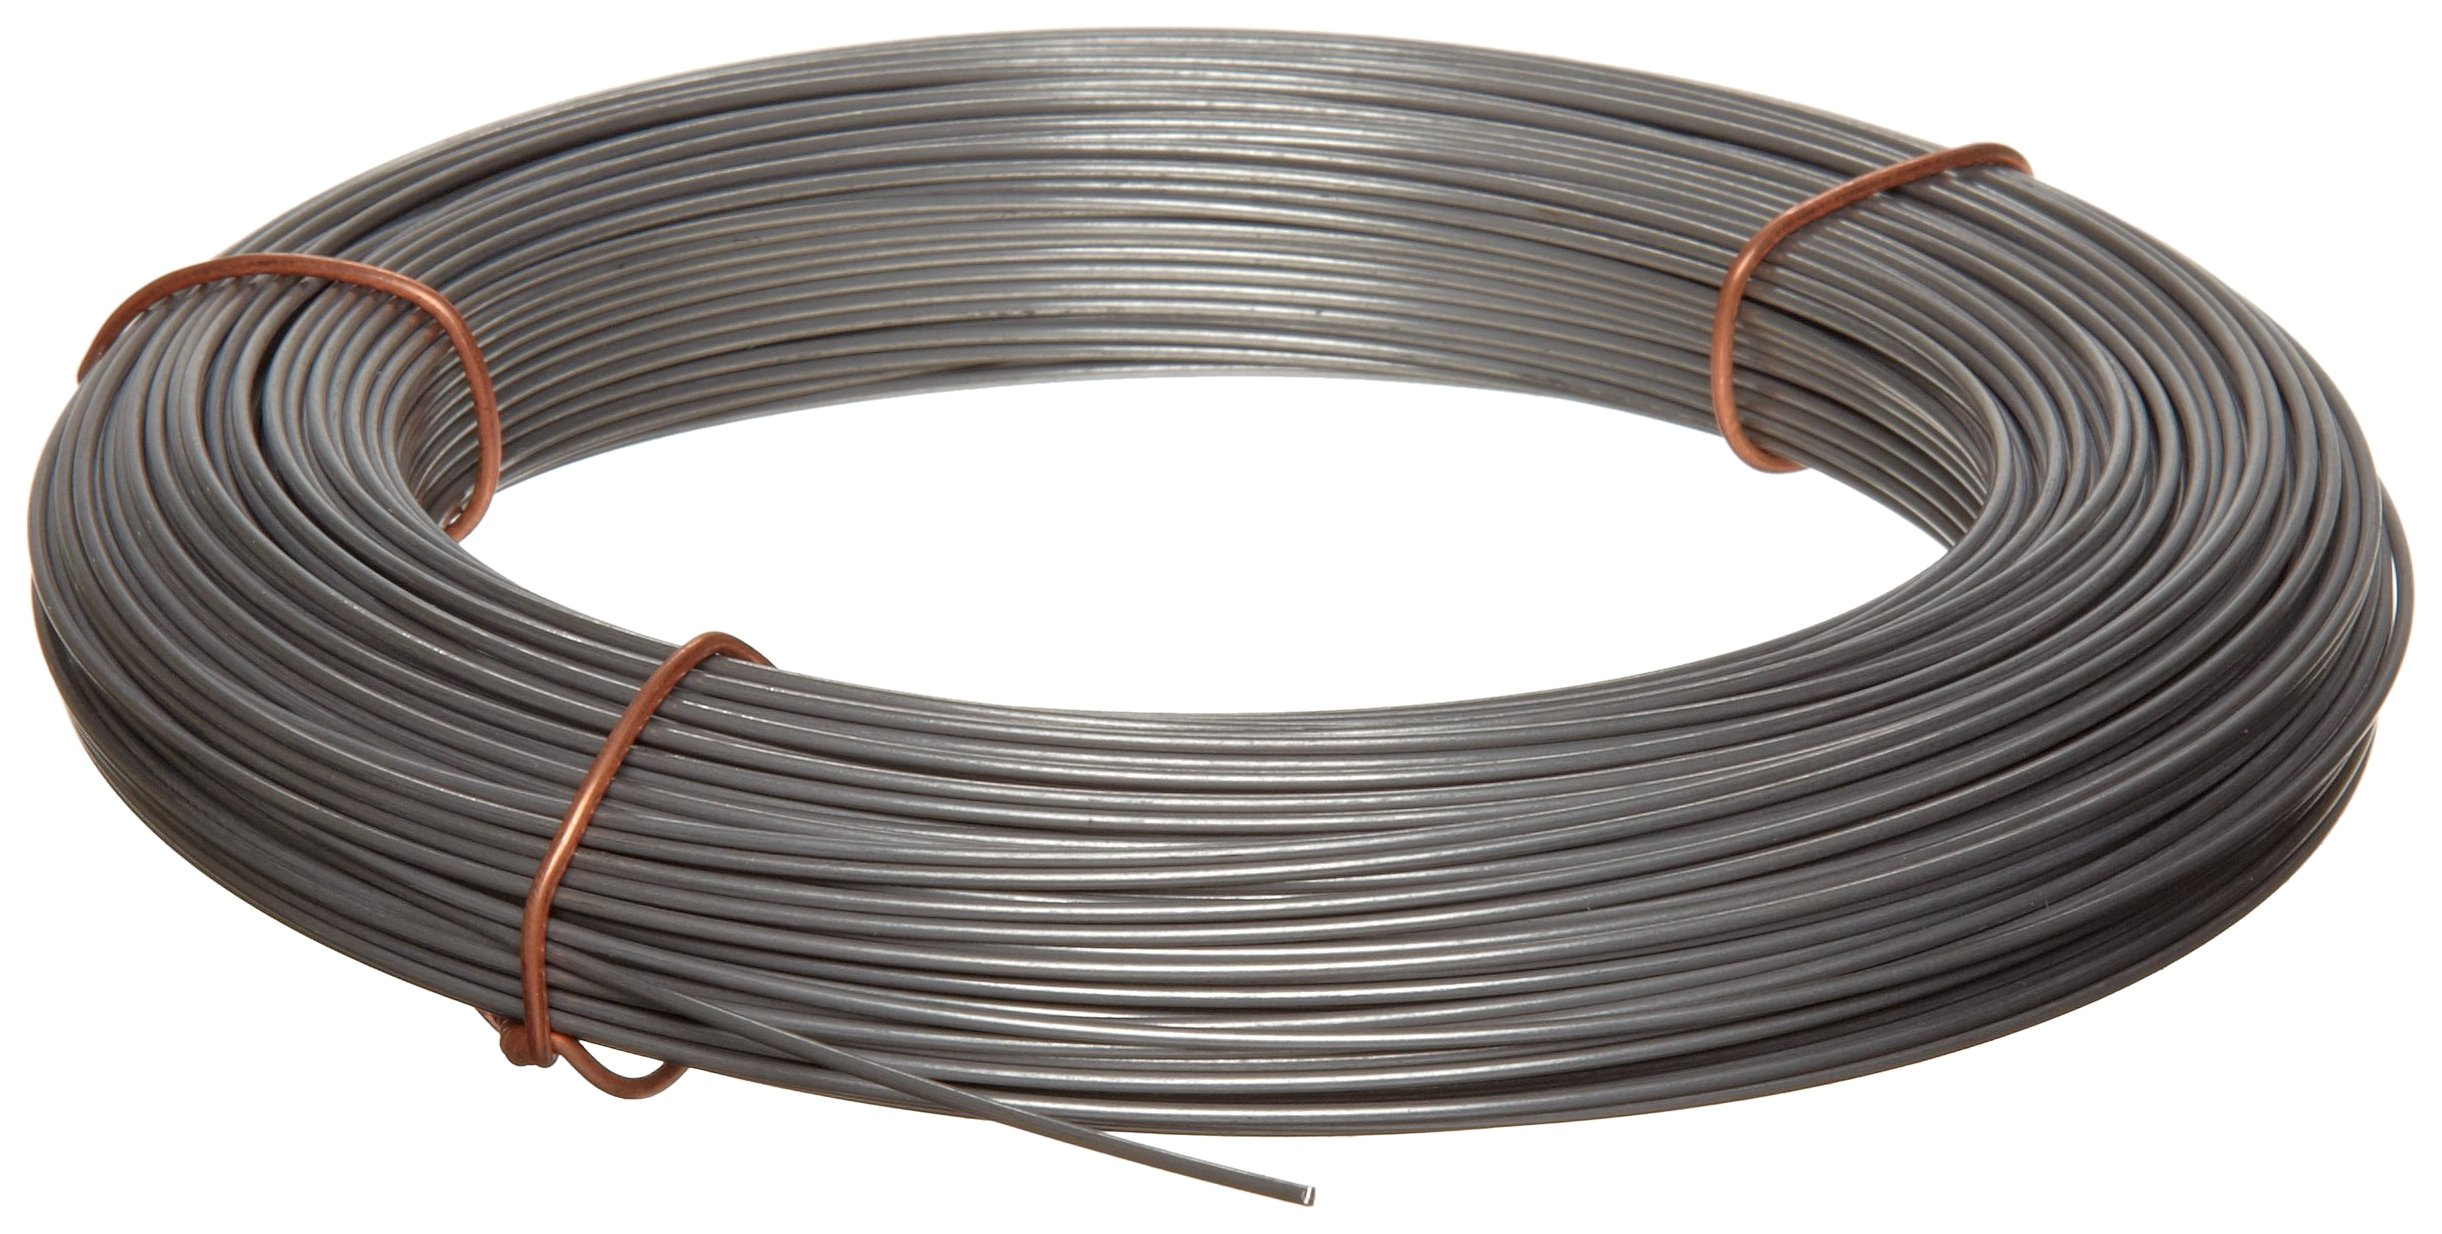 302 Stainless Steel Wire, Unpolished (Mill) Finish, Full Hard Temper, Precision Tolerance, ASTM A555/ASTM A580, 0.020'' Diameter, 937' Length